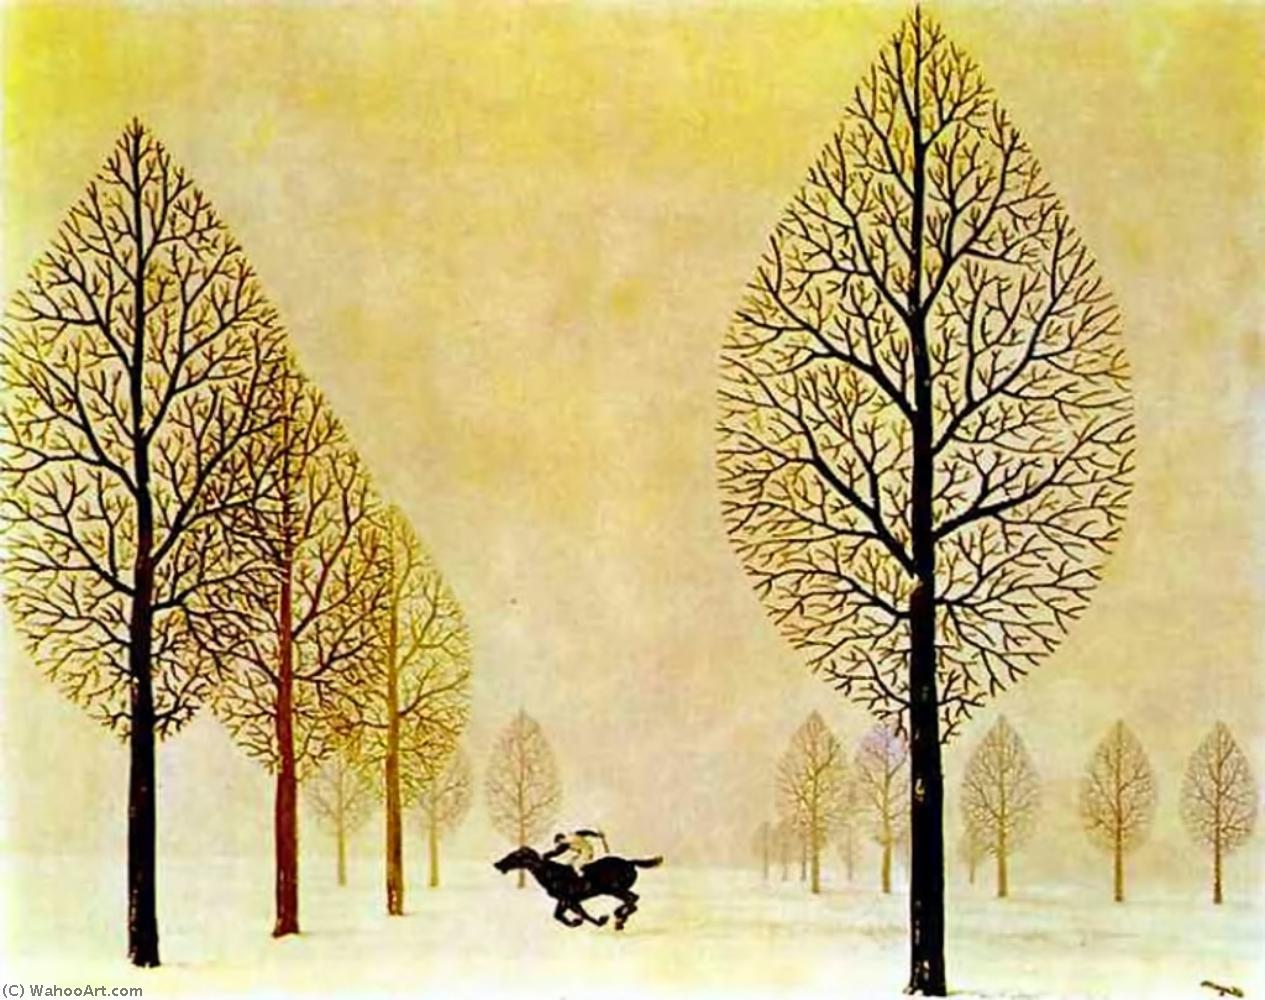 The lost jockey, 1948 by Rene Magritte (1898-1967, Belgium) | Oil Painting | WahooArt.com